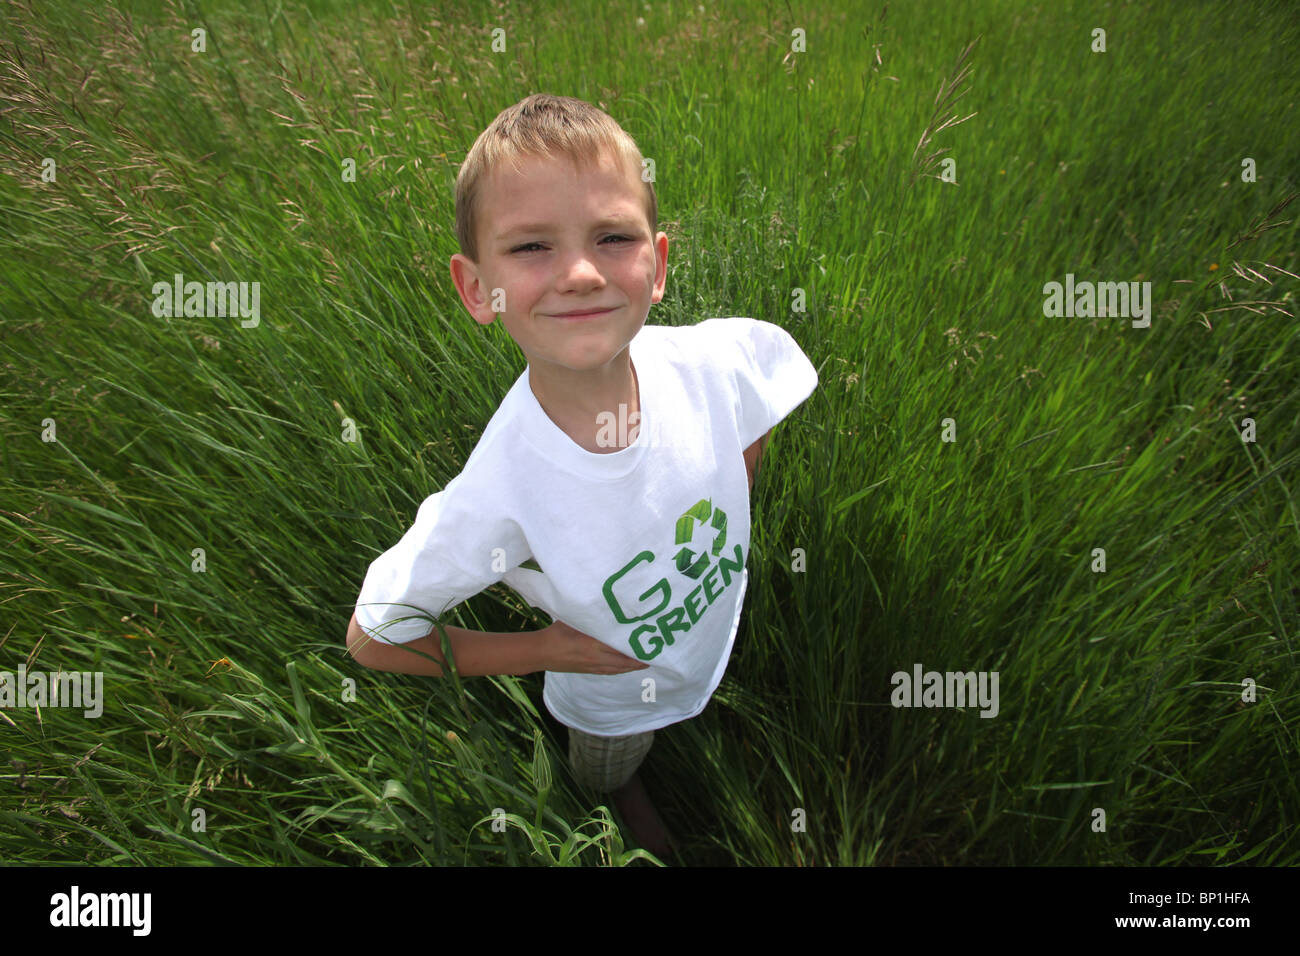 boy standing in tall green grass wearing 'go green' tee shirt - Stock Image